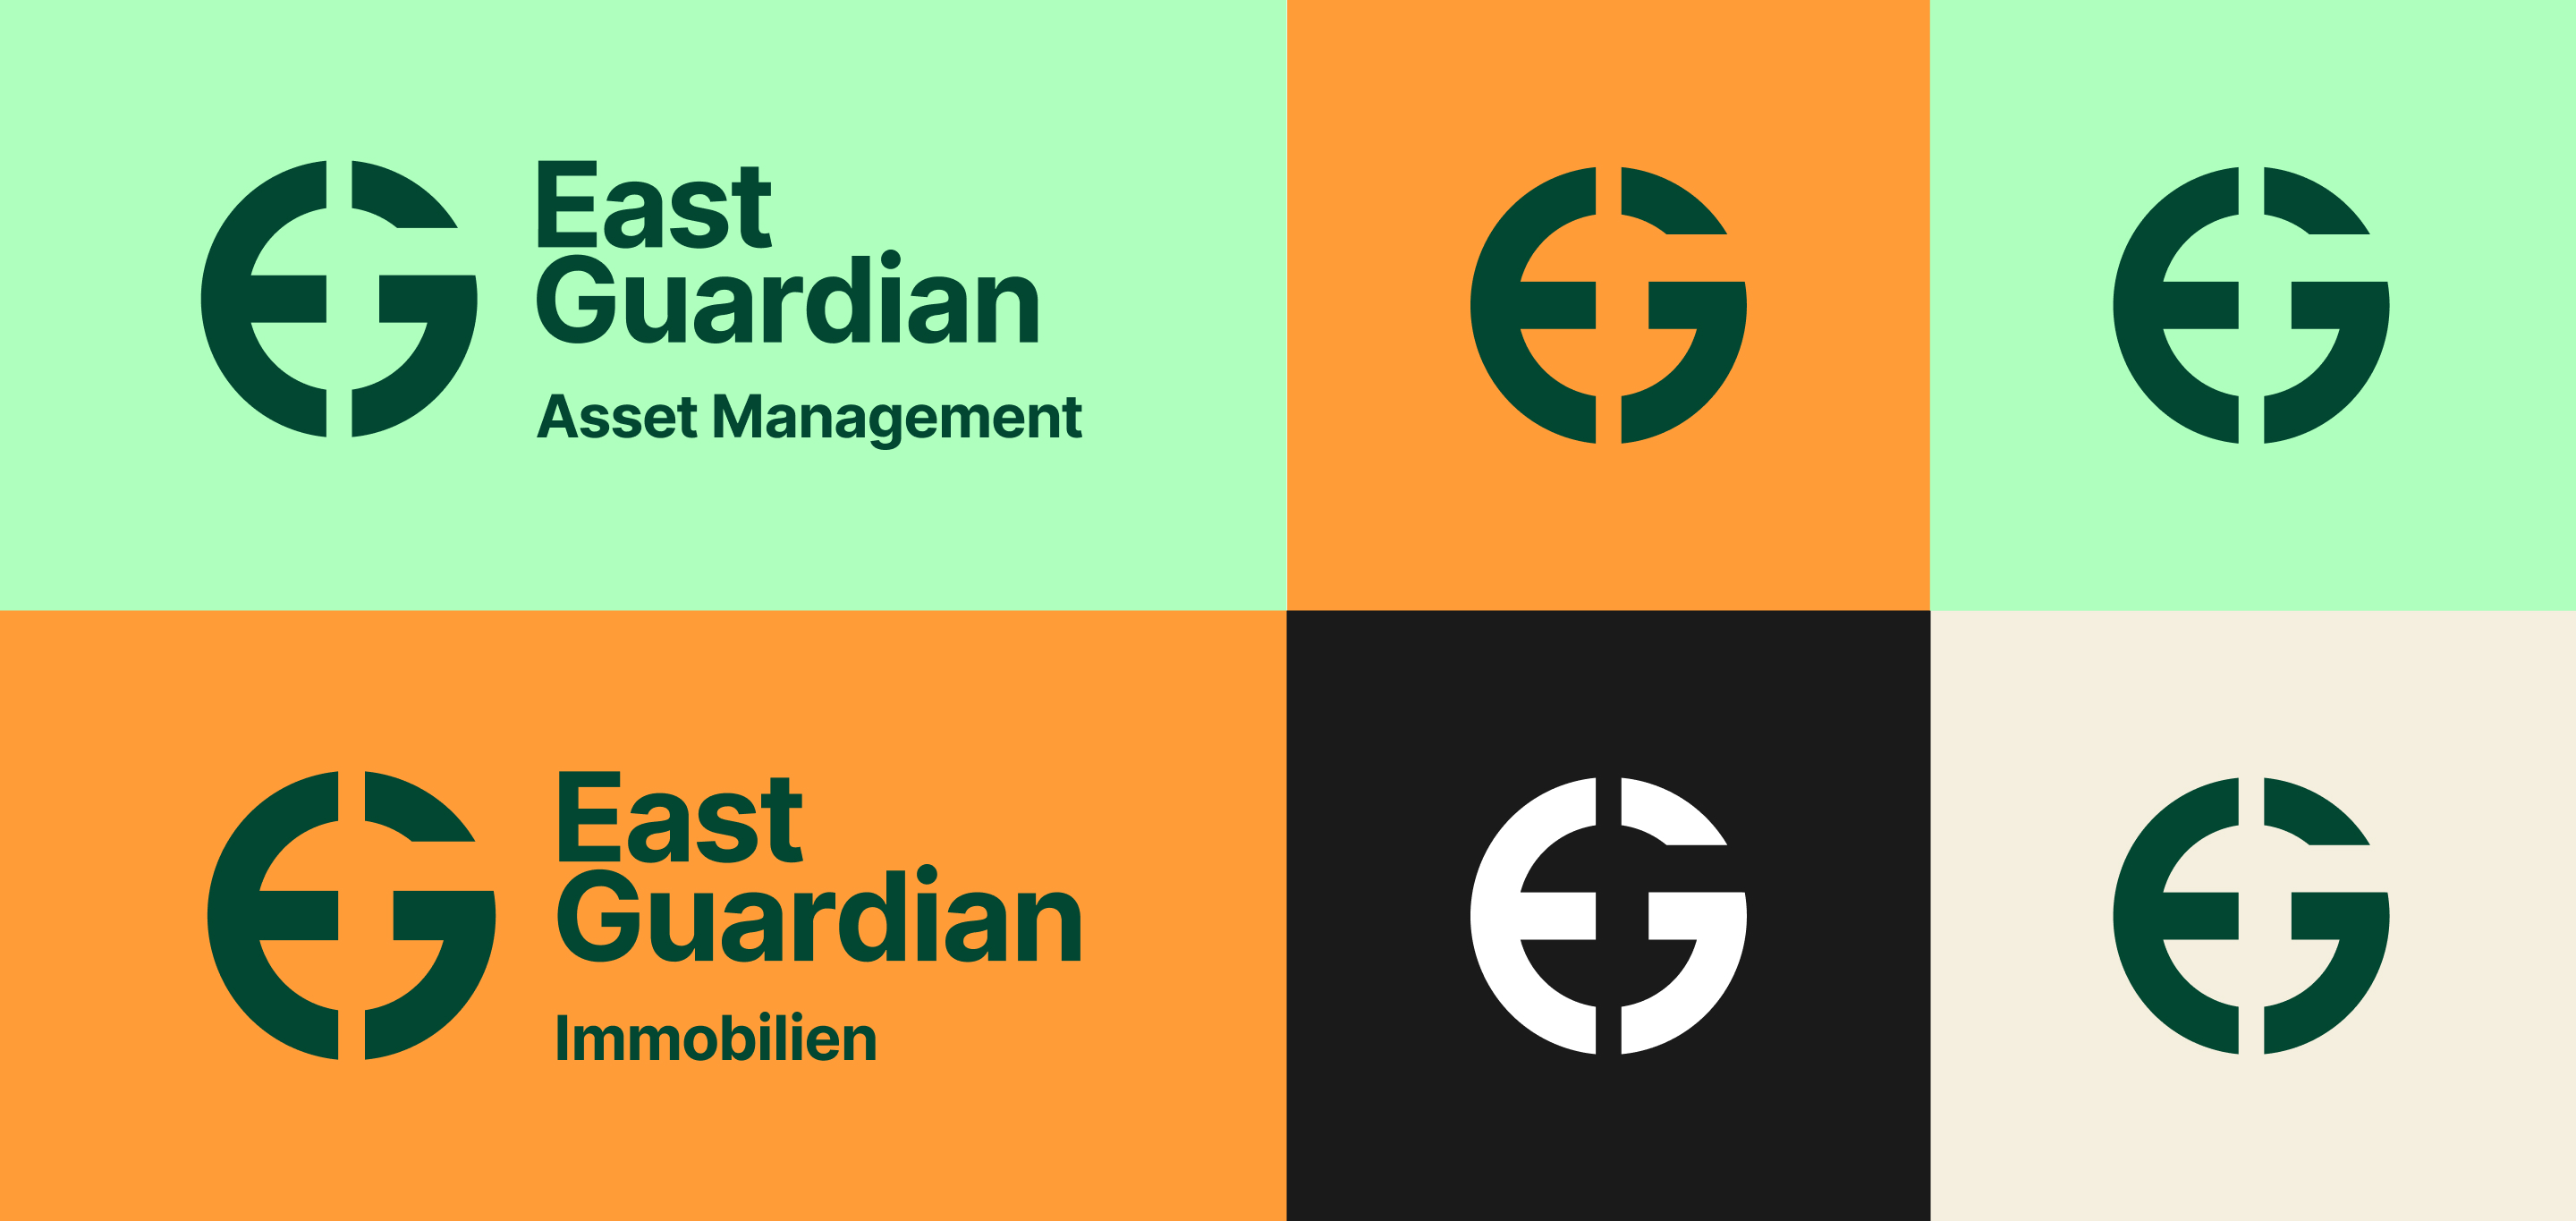 The logos for East Guardian Asset Management and East Guardian Immobilien share the same symbol and font but using different brand colors.